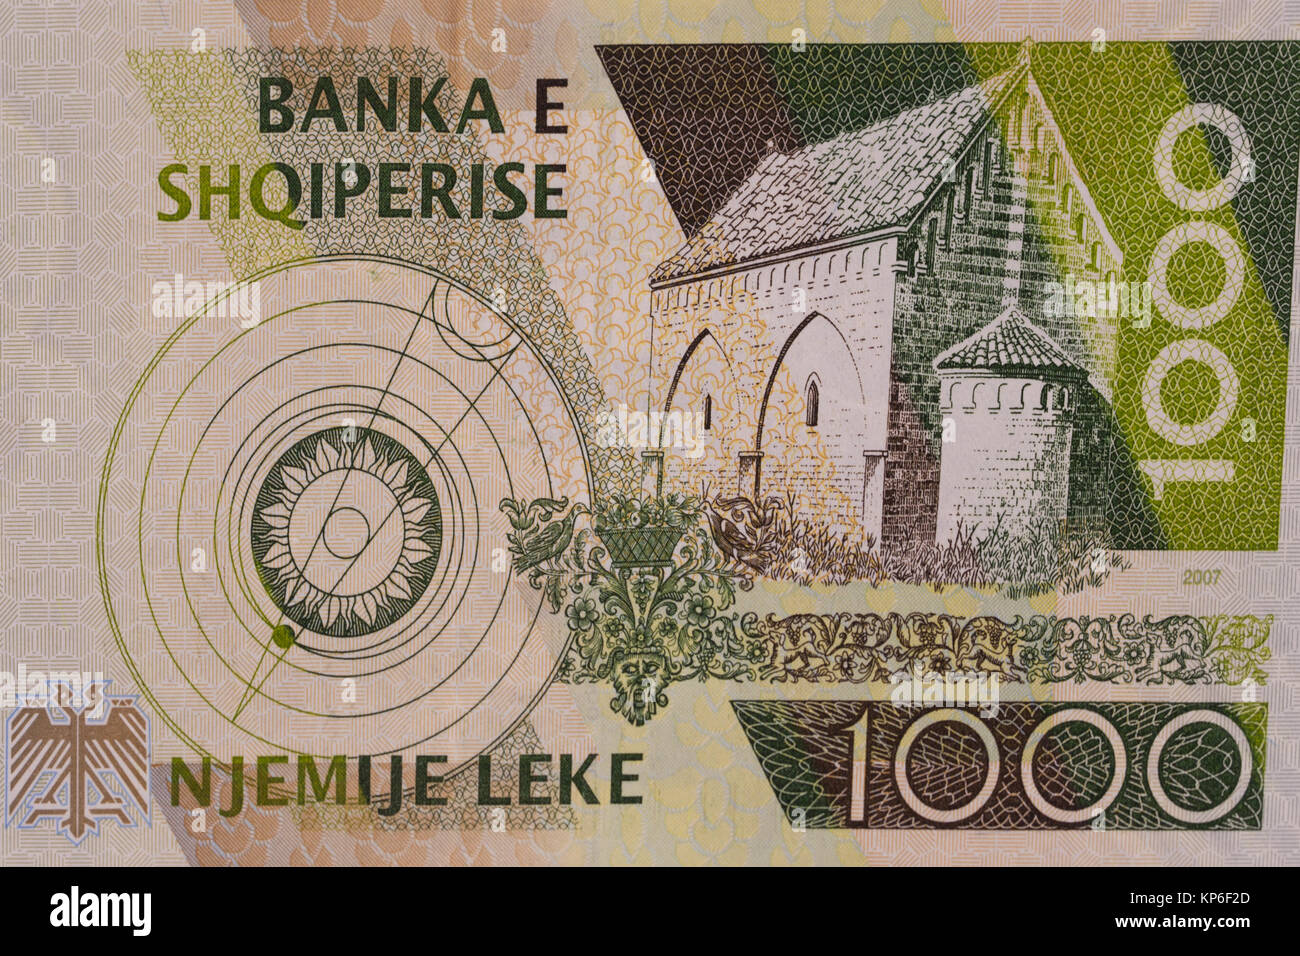 Reverse of Albanian currency one thousand 1000 Lek banknote - Stock Image